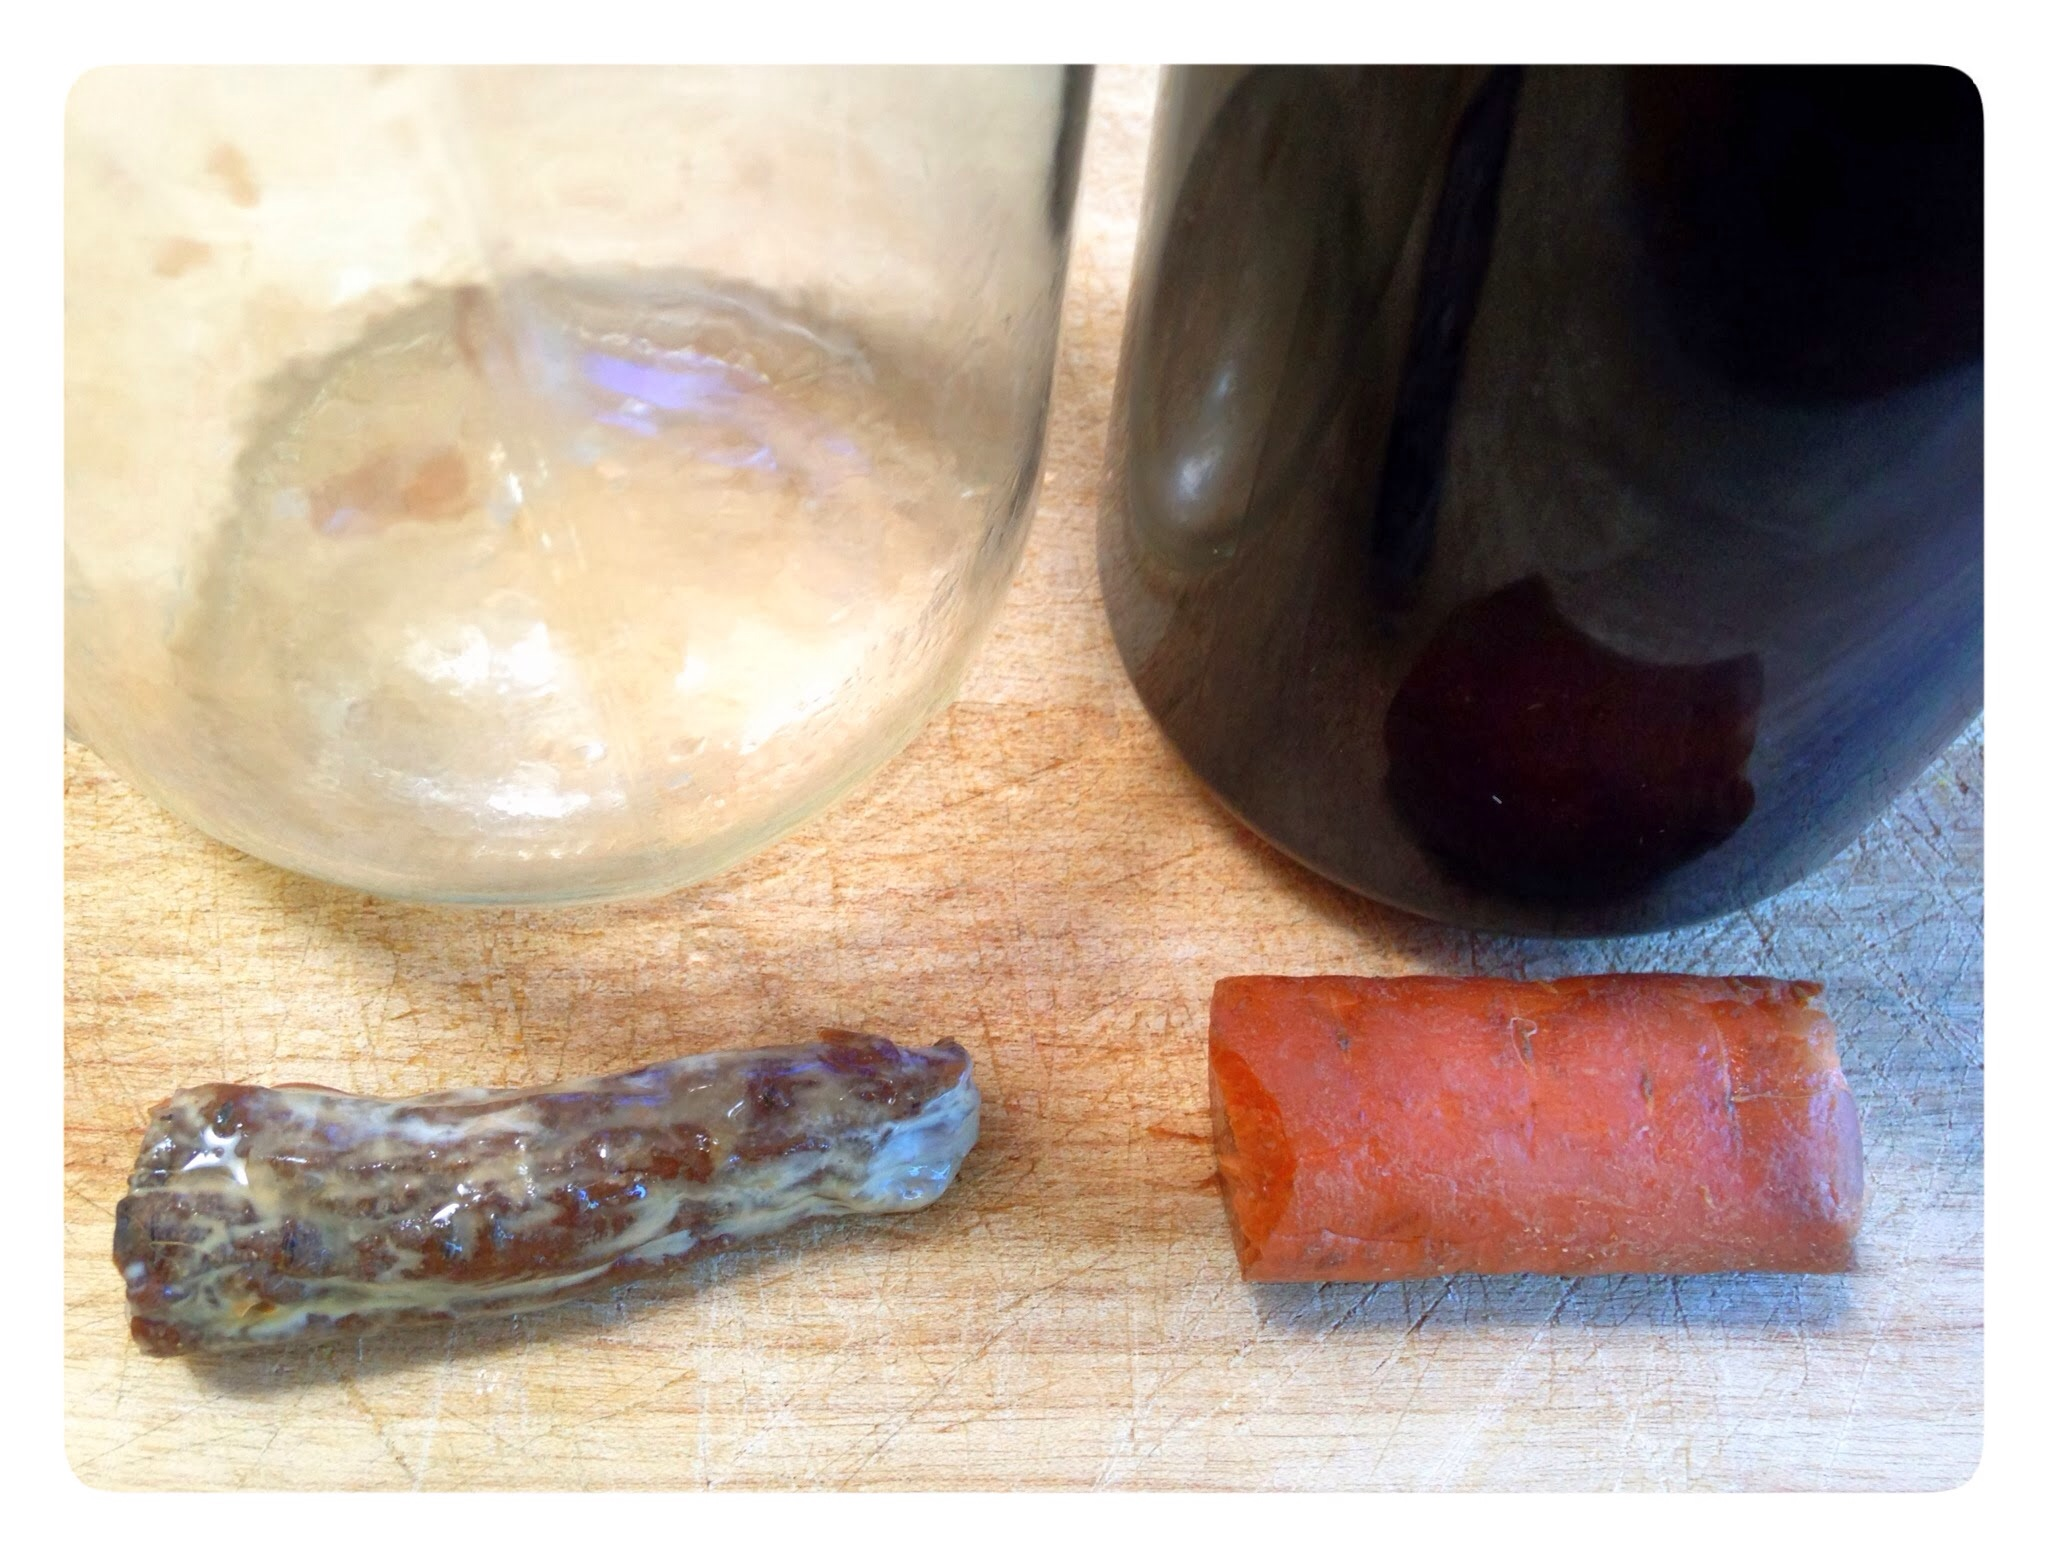 Carrot experiment in Miron glass at 4 months